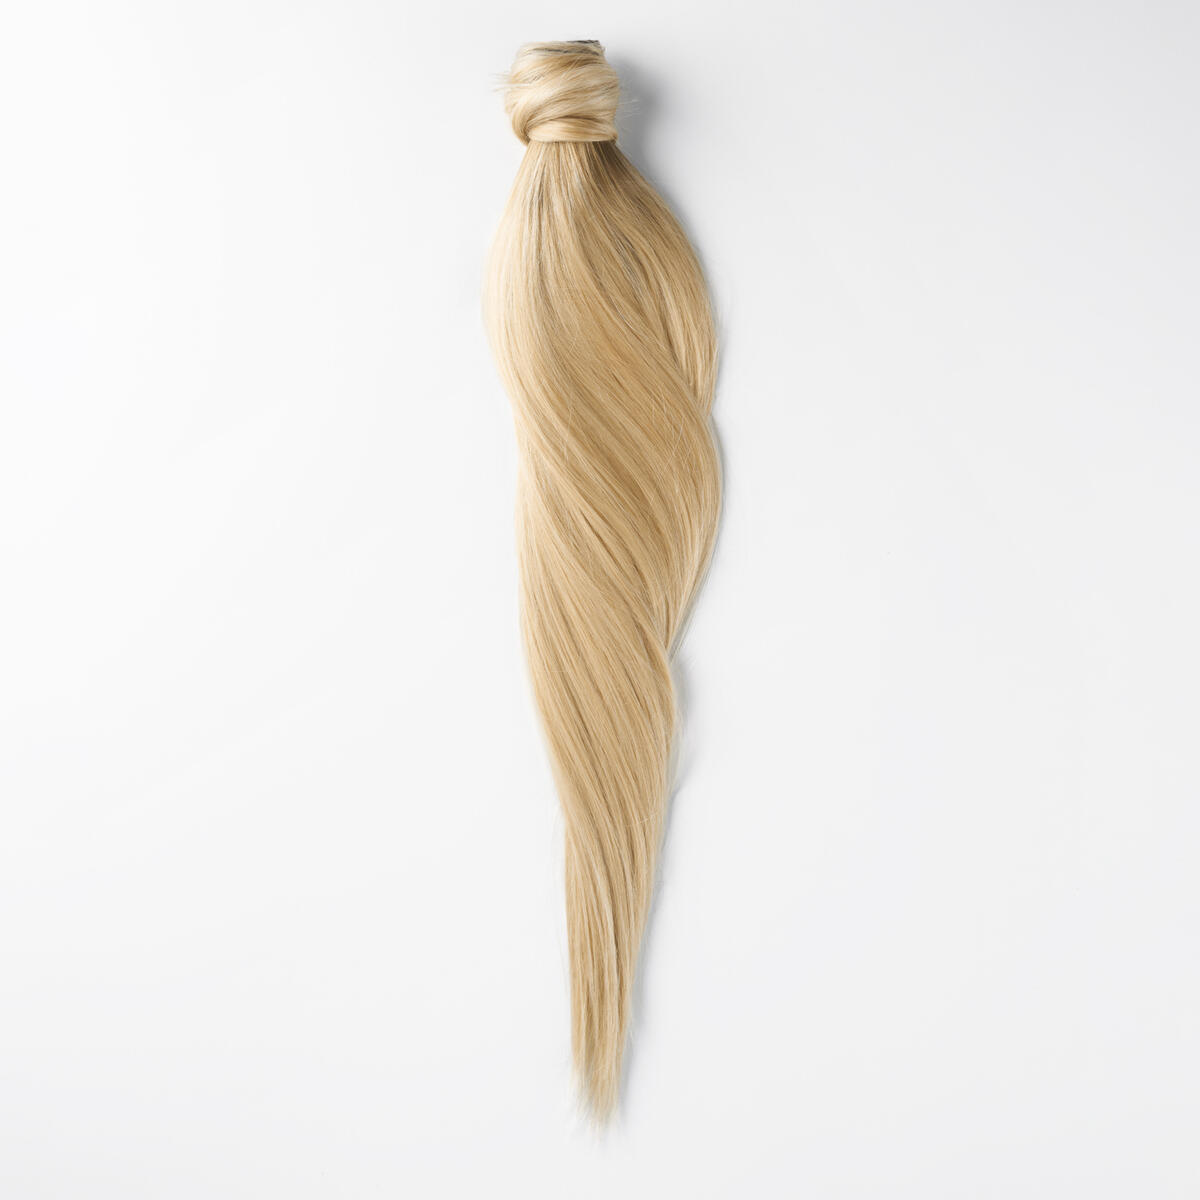 Clip-in Ponytail Original C7.3/8.3 Brilliant Blonde ColorMelt 50 cm